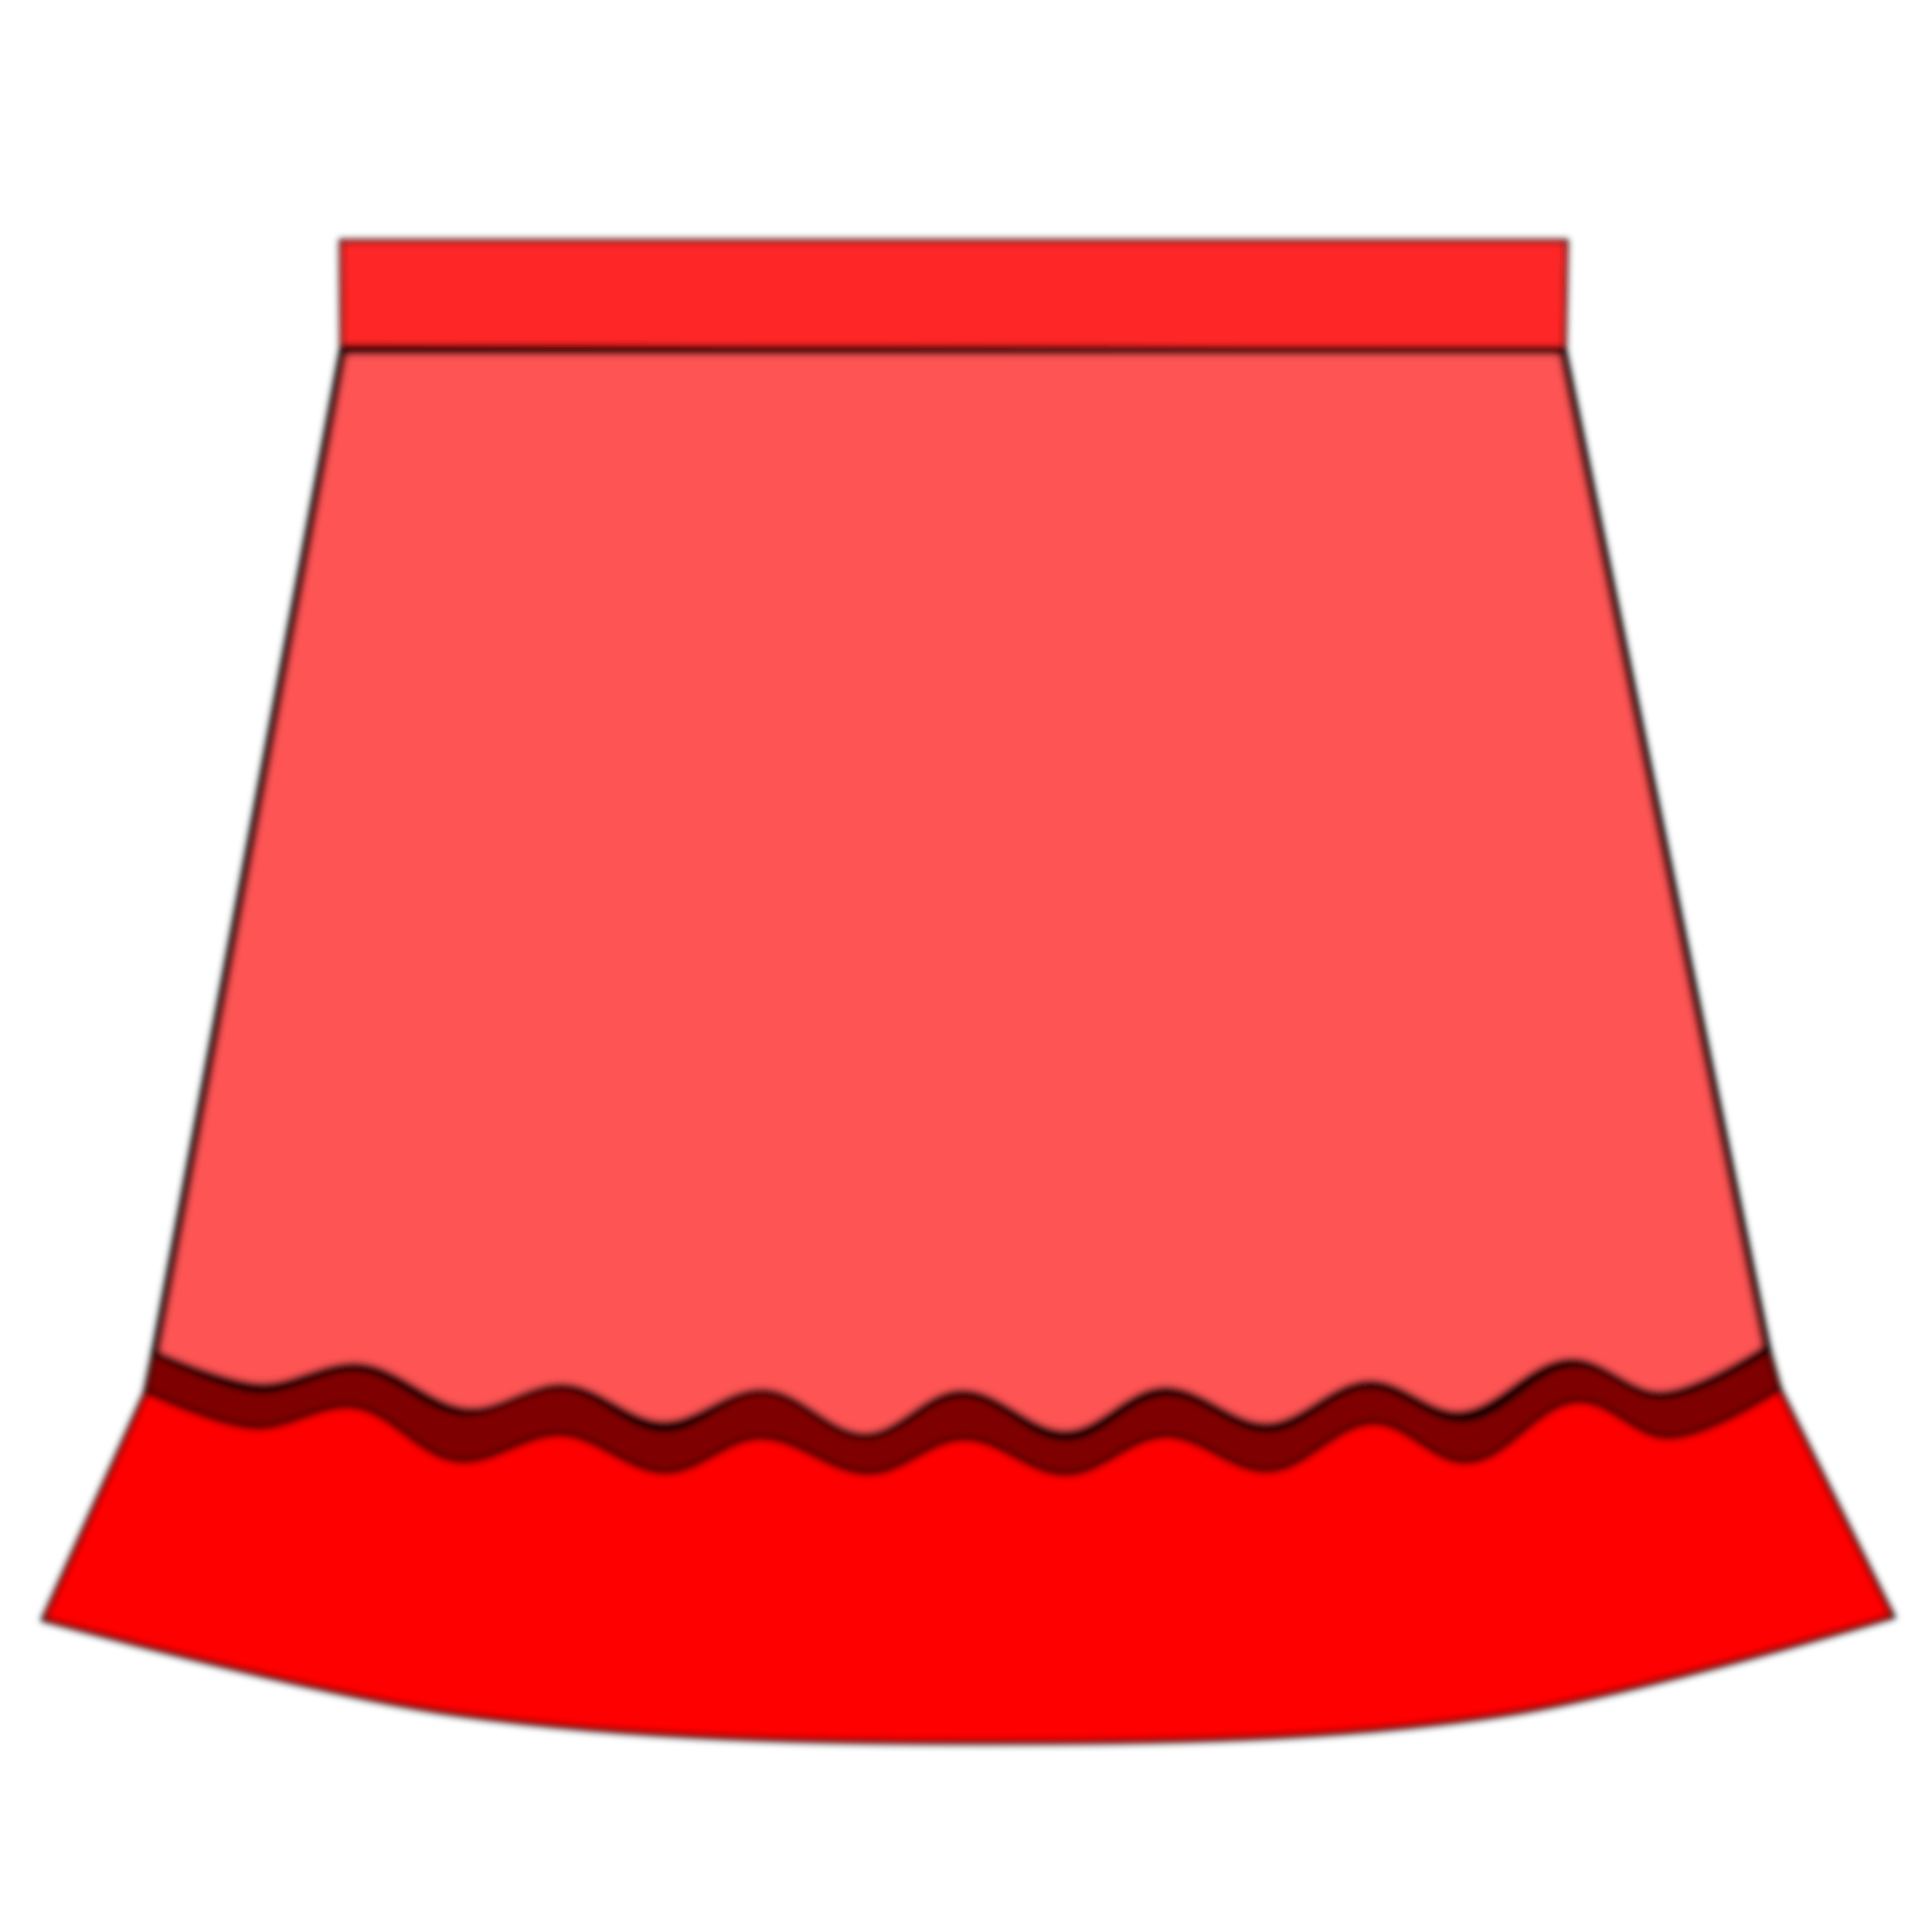 Skirt by alanspeak